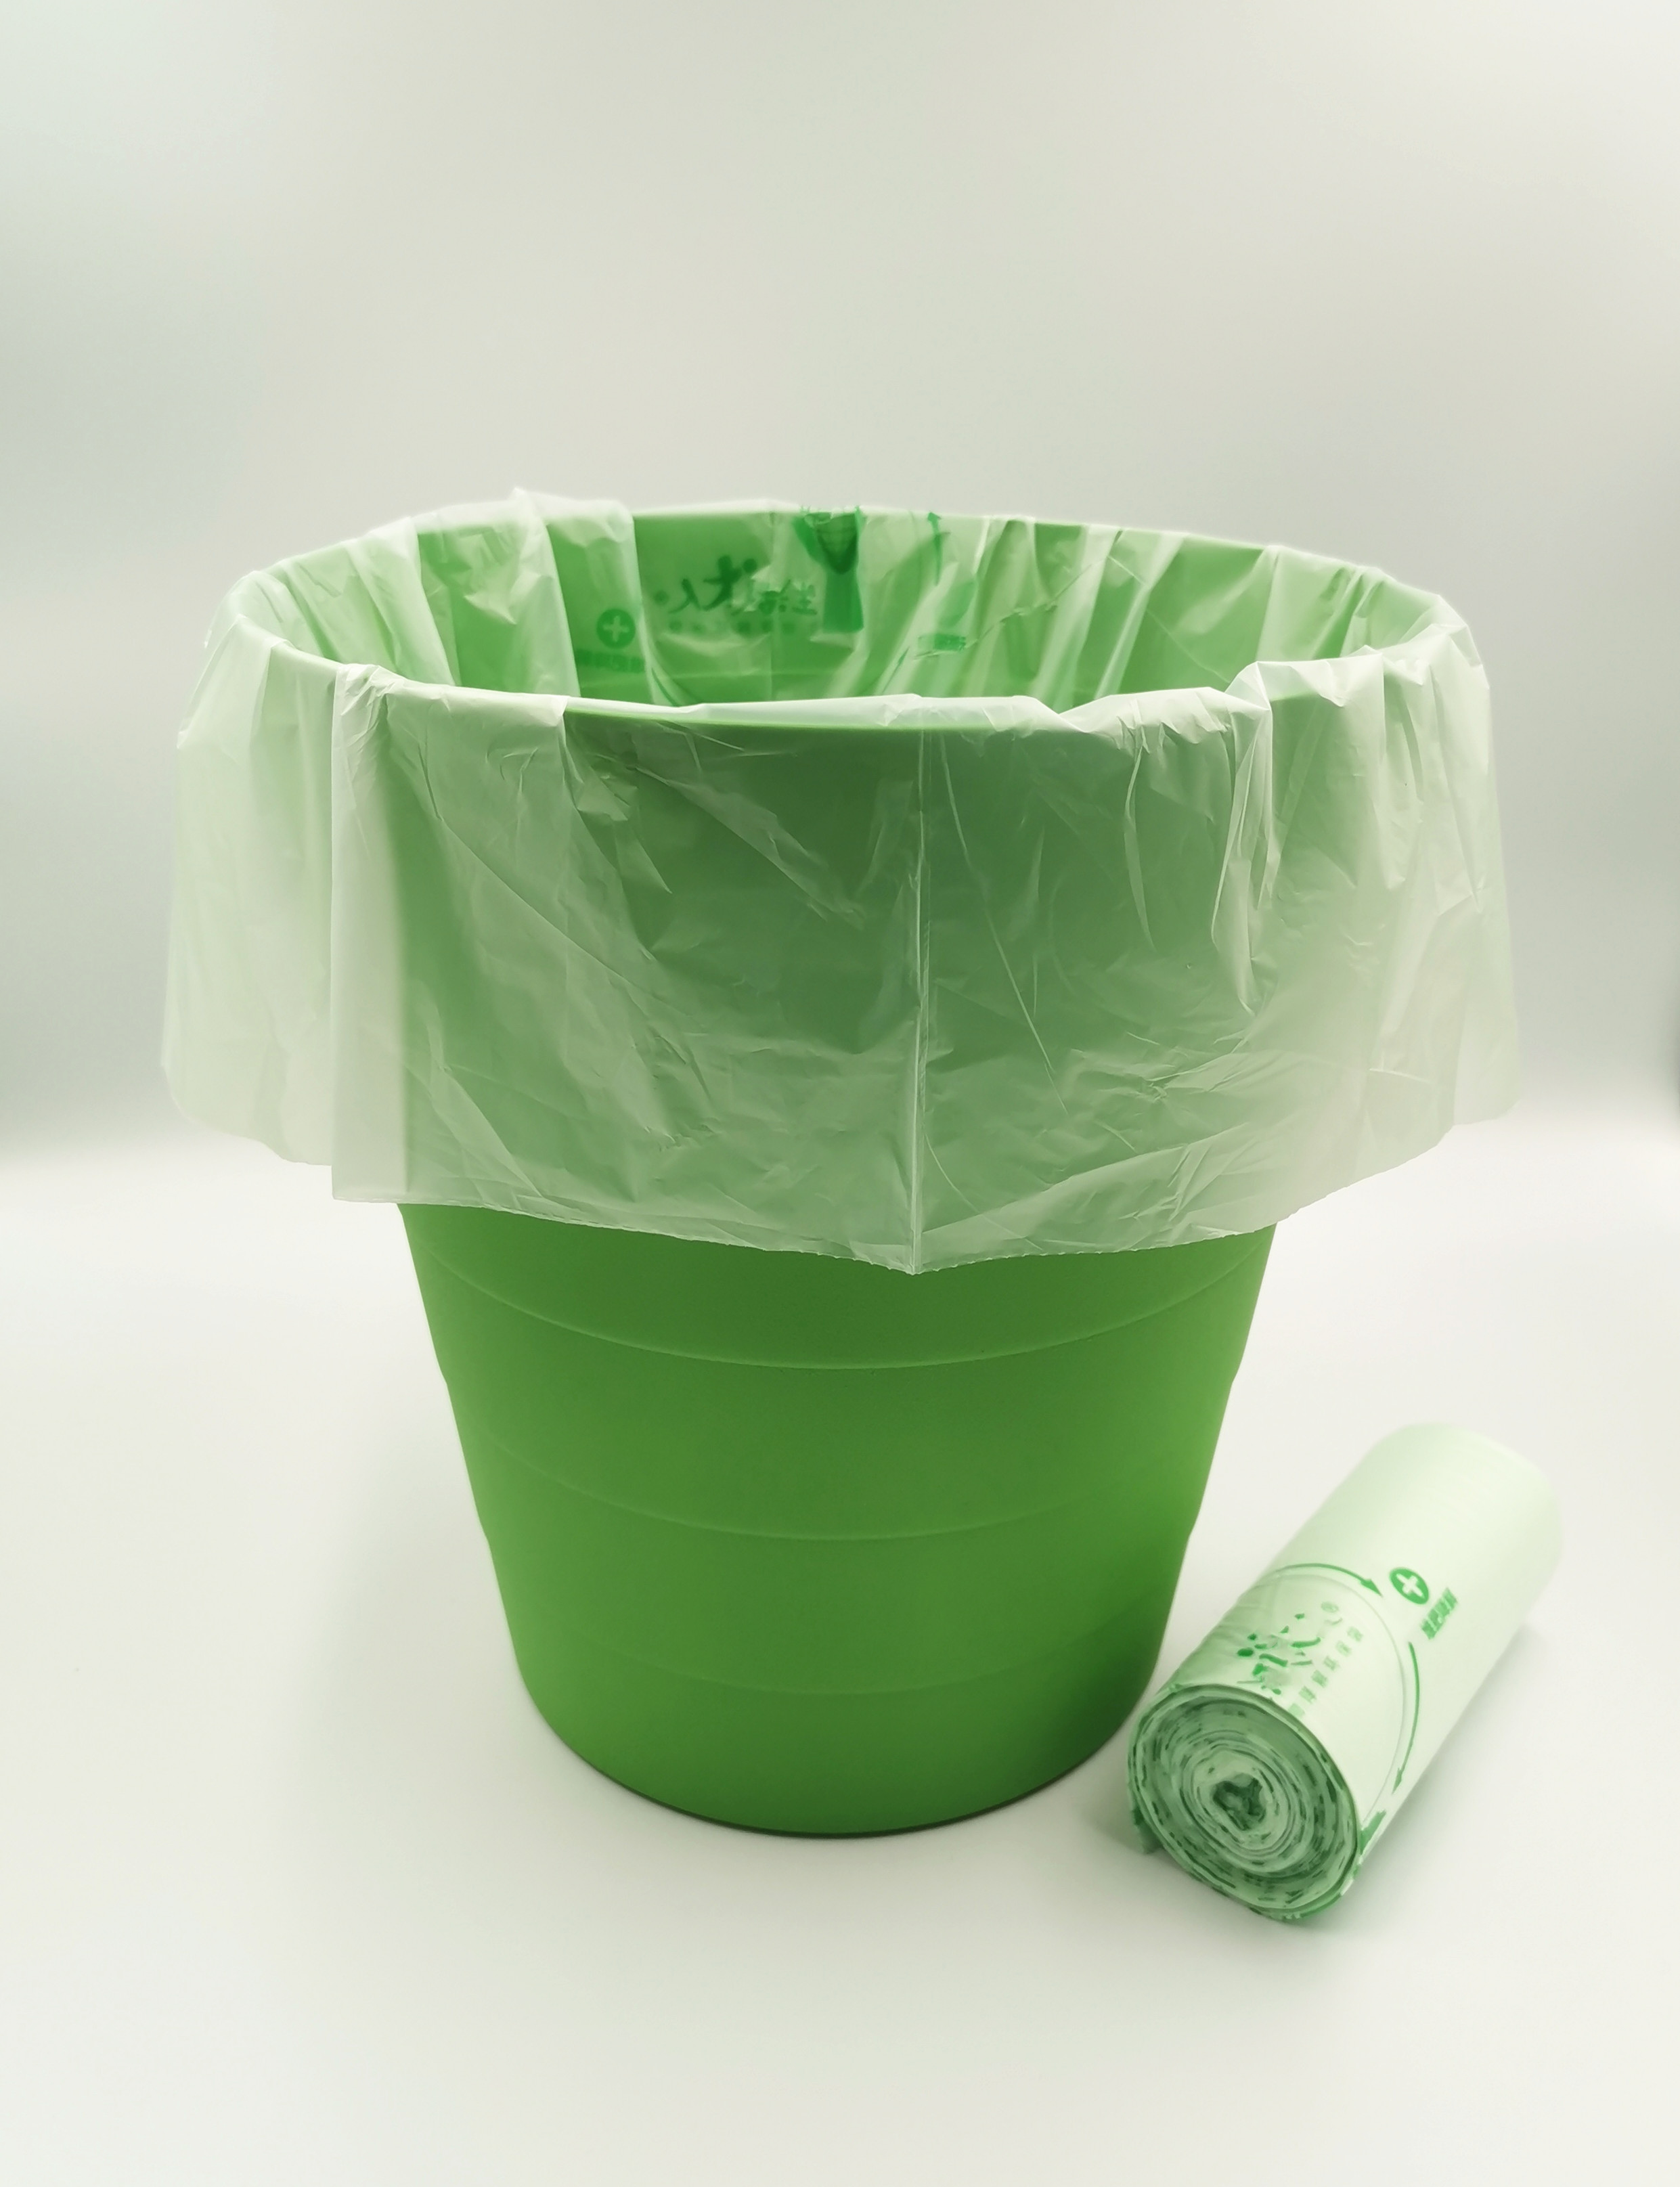 Organic Waste Collection Bags